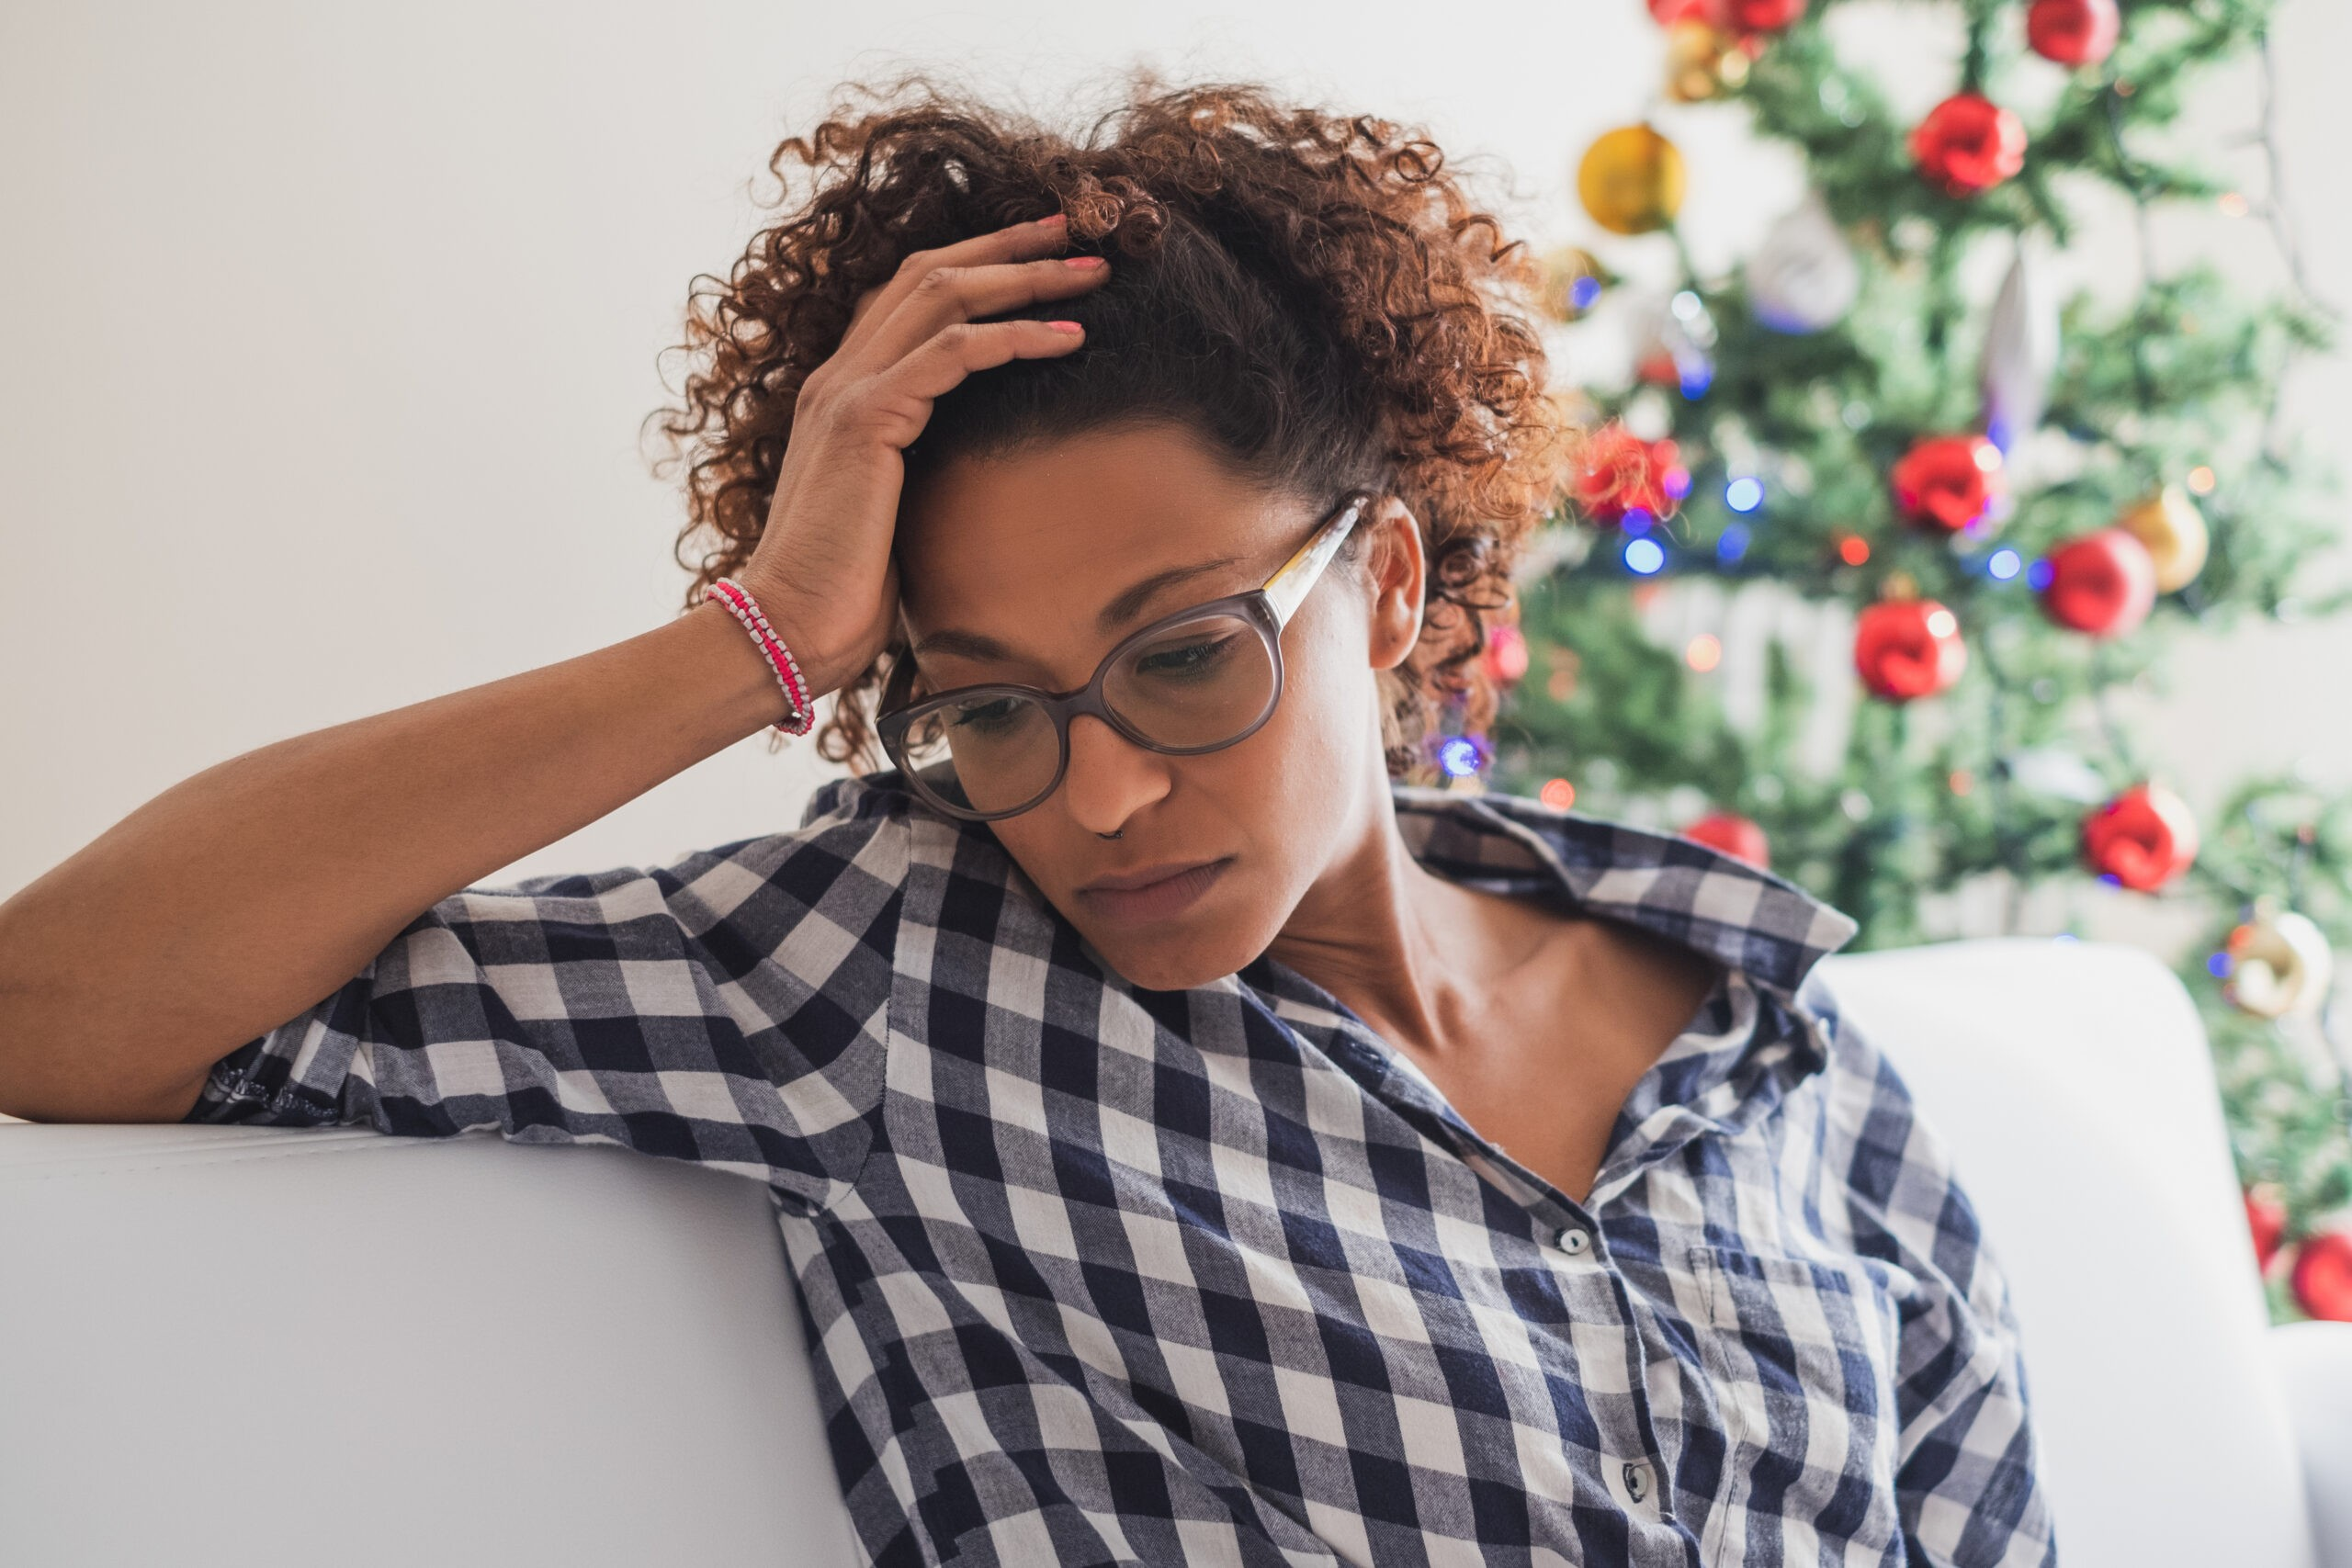 Dealing with Conflict During the Holidays